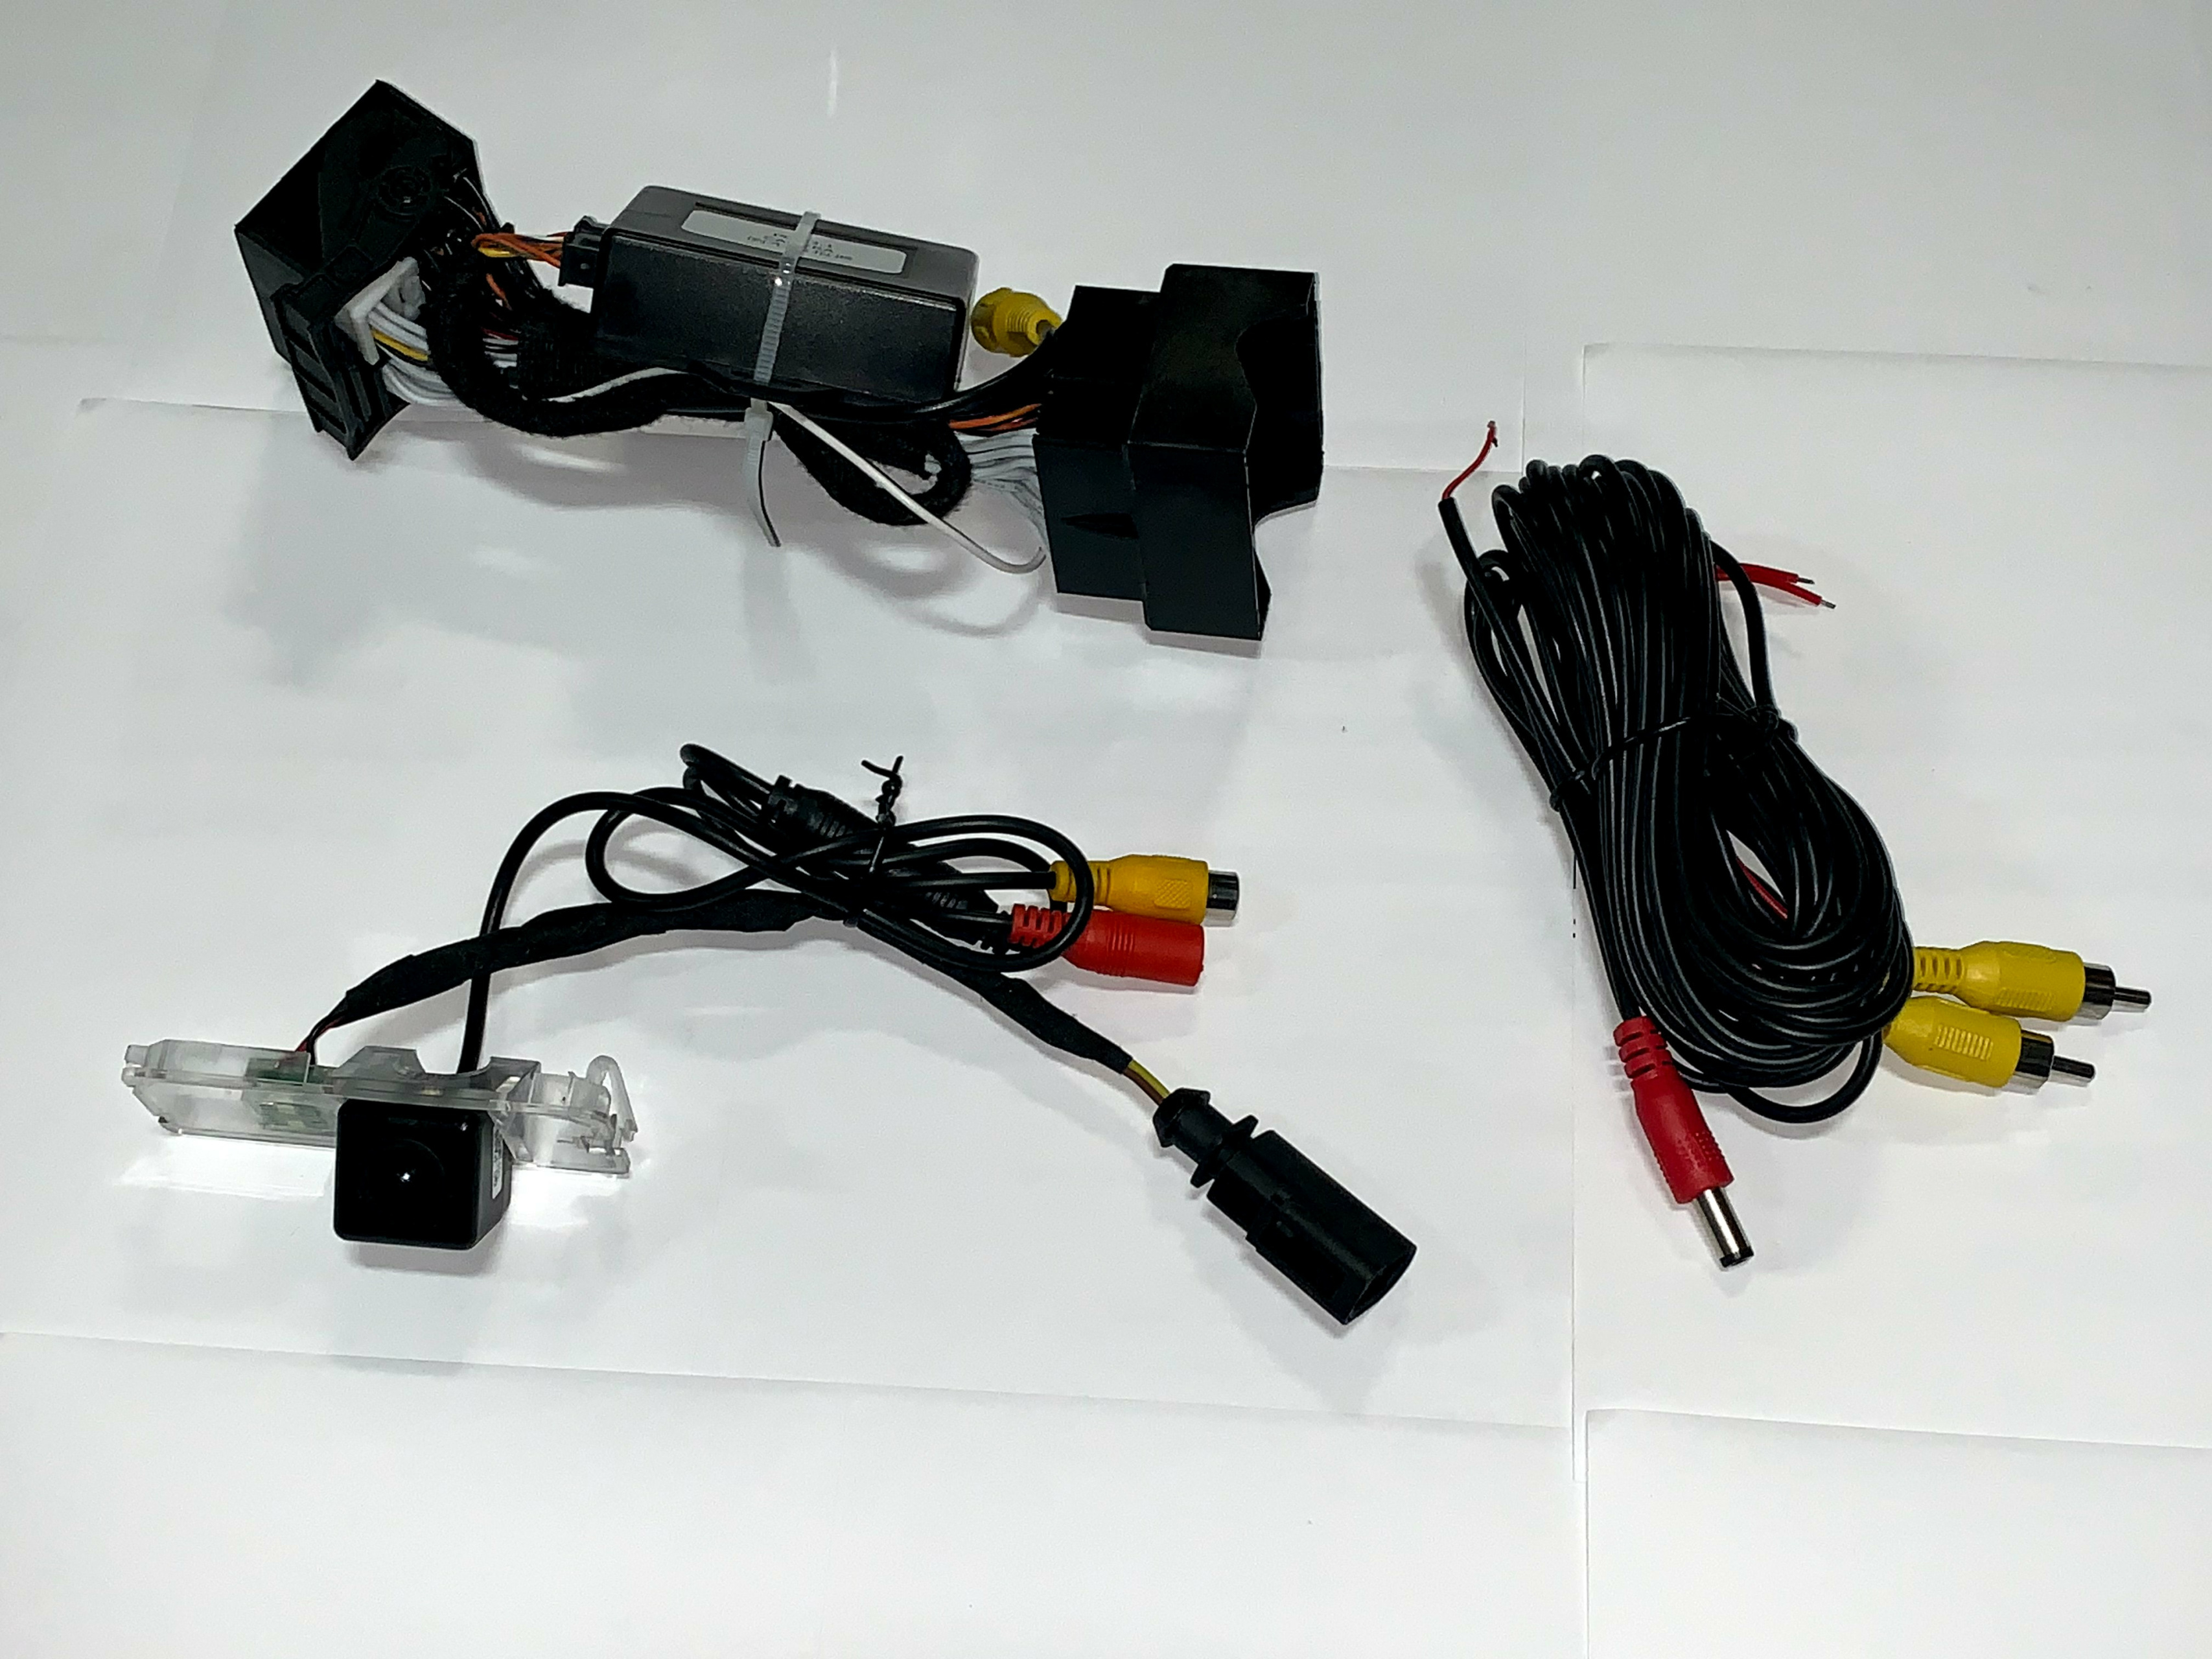 Porsche Backup Camera Kit for PCM 3 1 Boxster Cayman Carrera